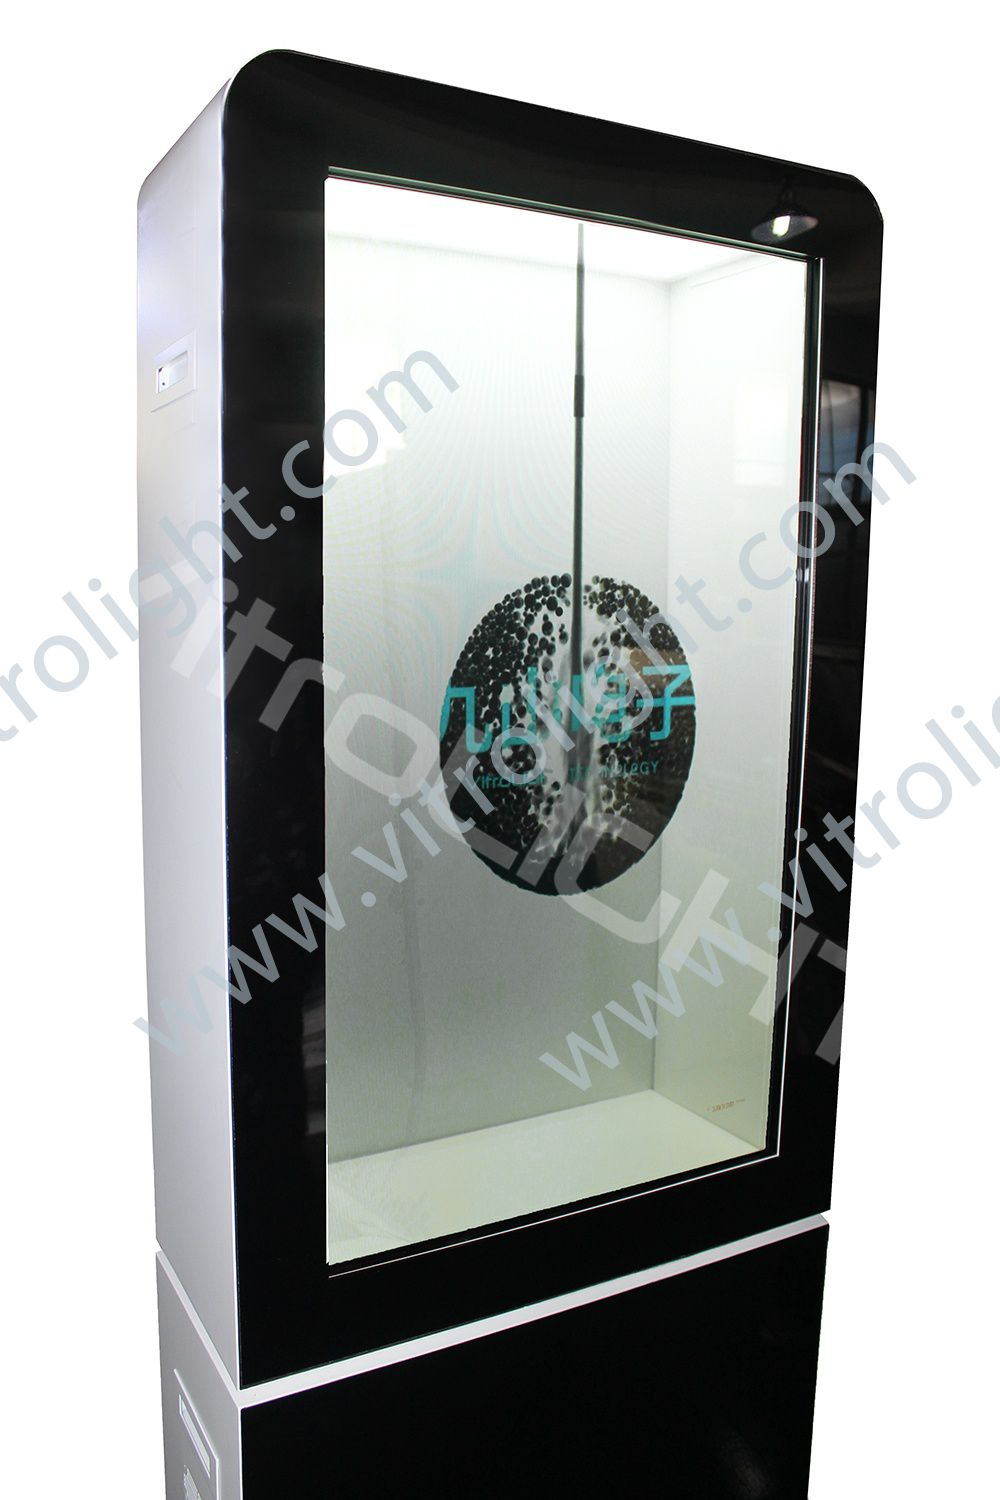 43-inch transparent LCD screen advertising all-in-one machine